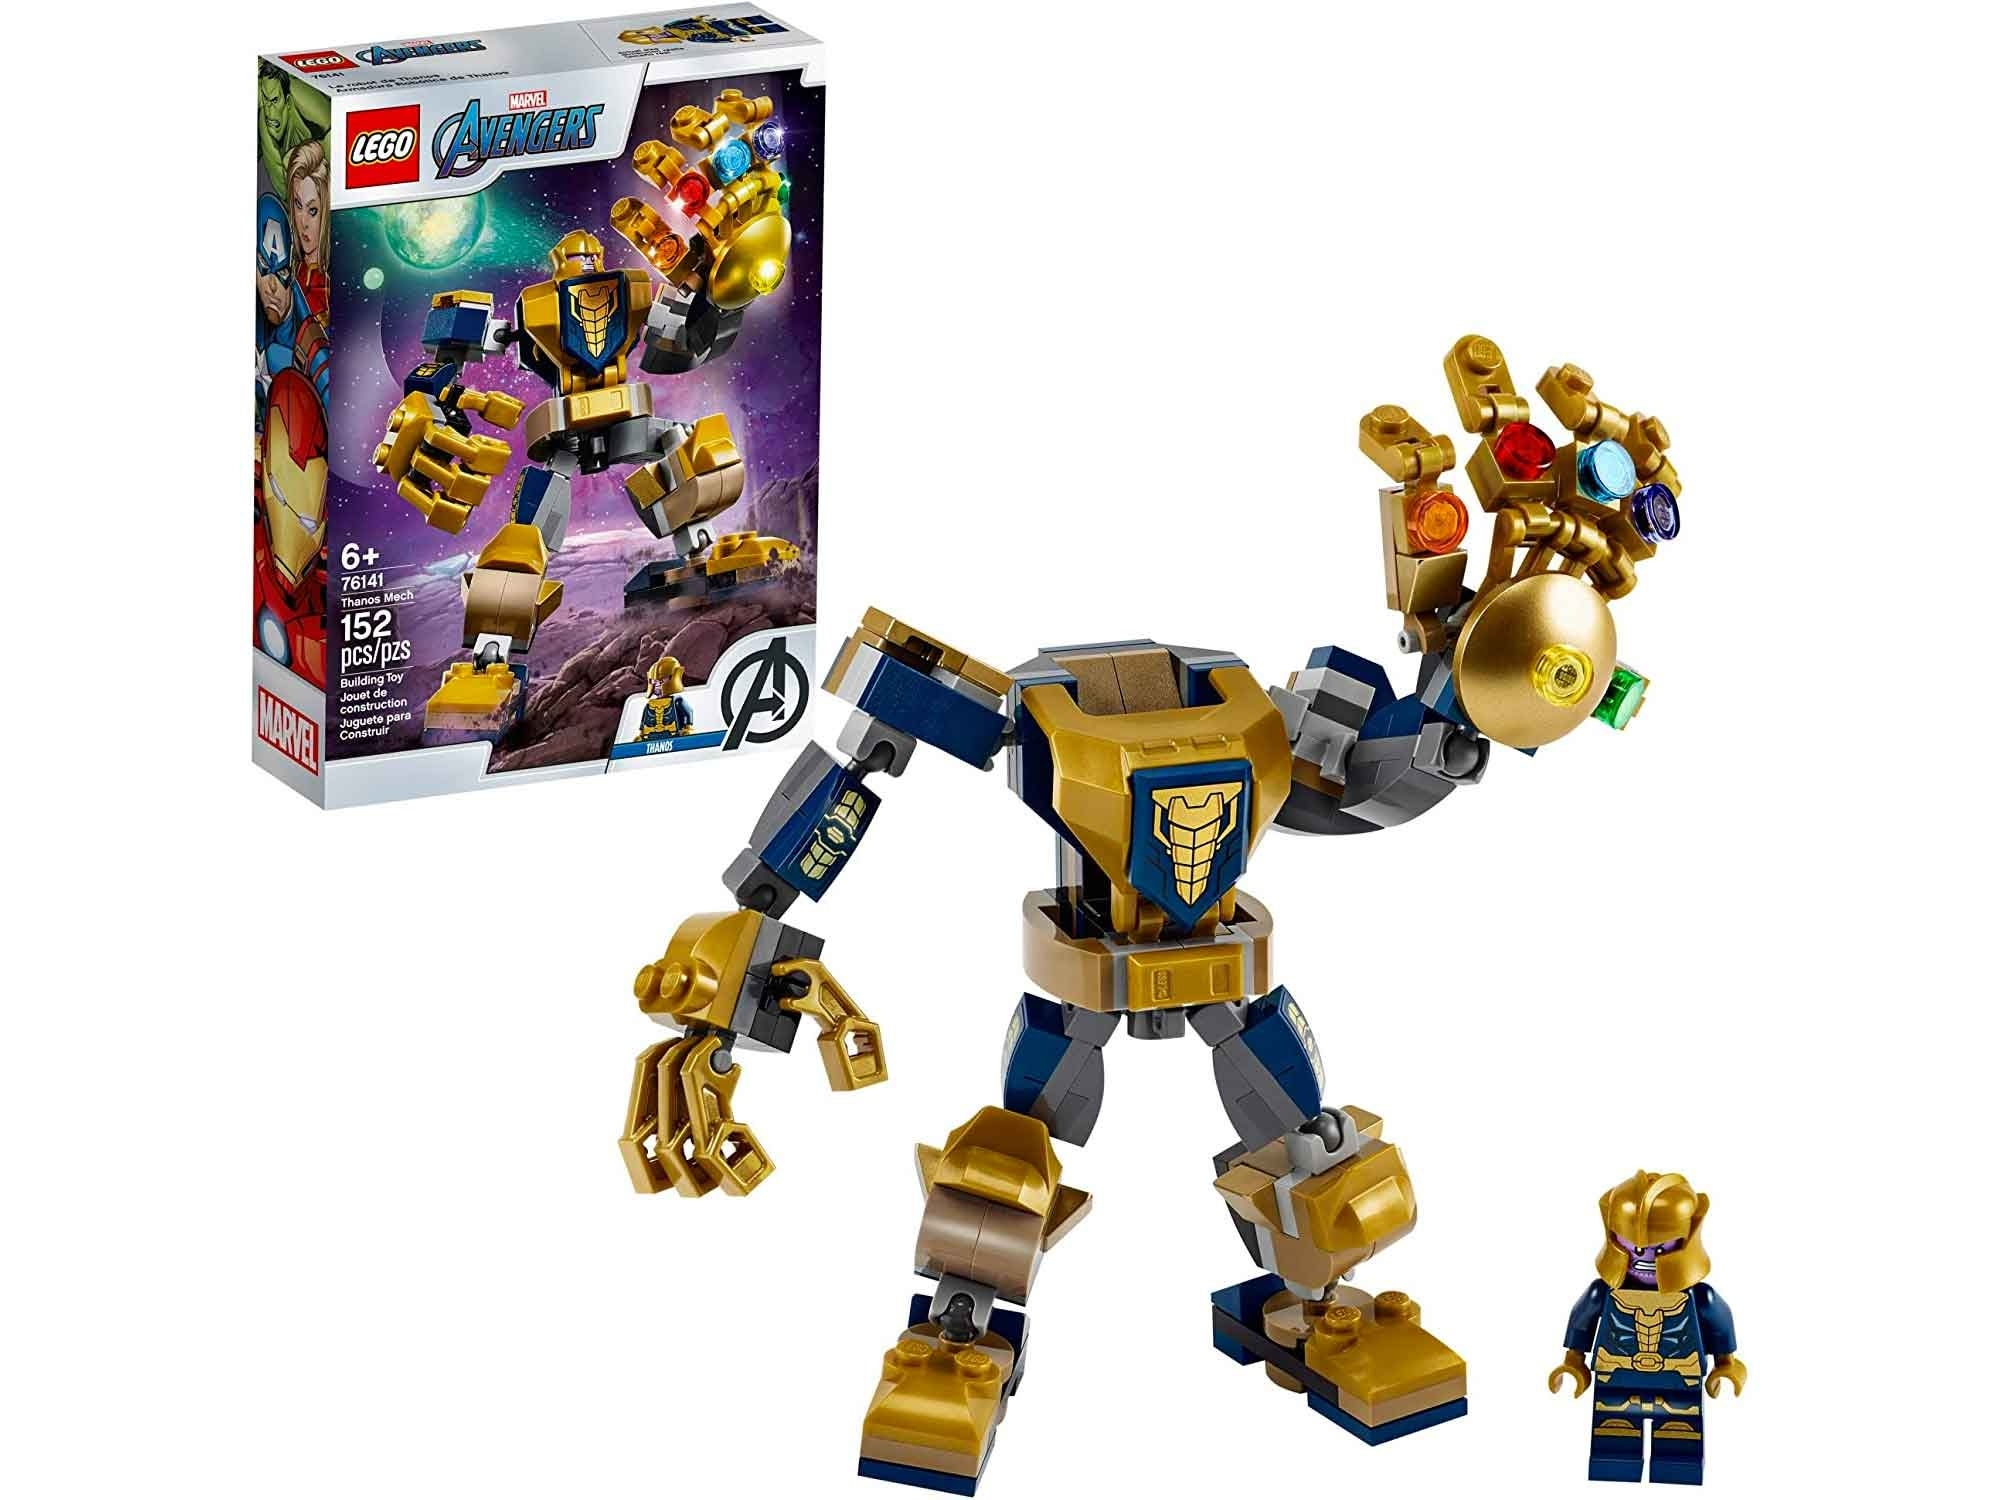 LEGO Marvel Avengers Thanos Mech Cool Action Building Toy for Kids with Mech Figure Thanos Minifigure